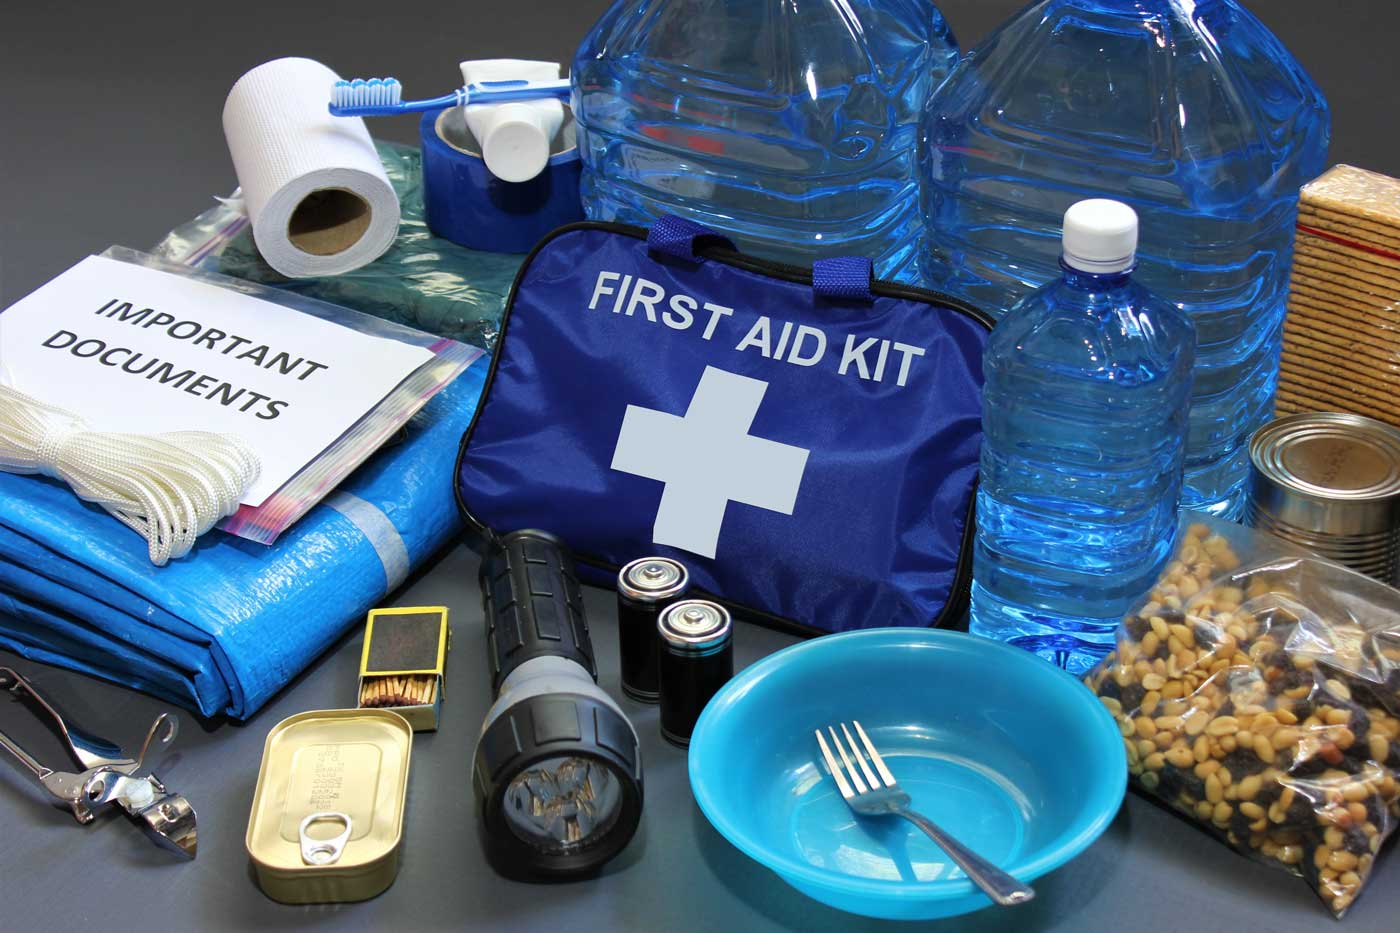 Contents of First Aid Kit